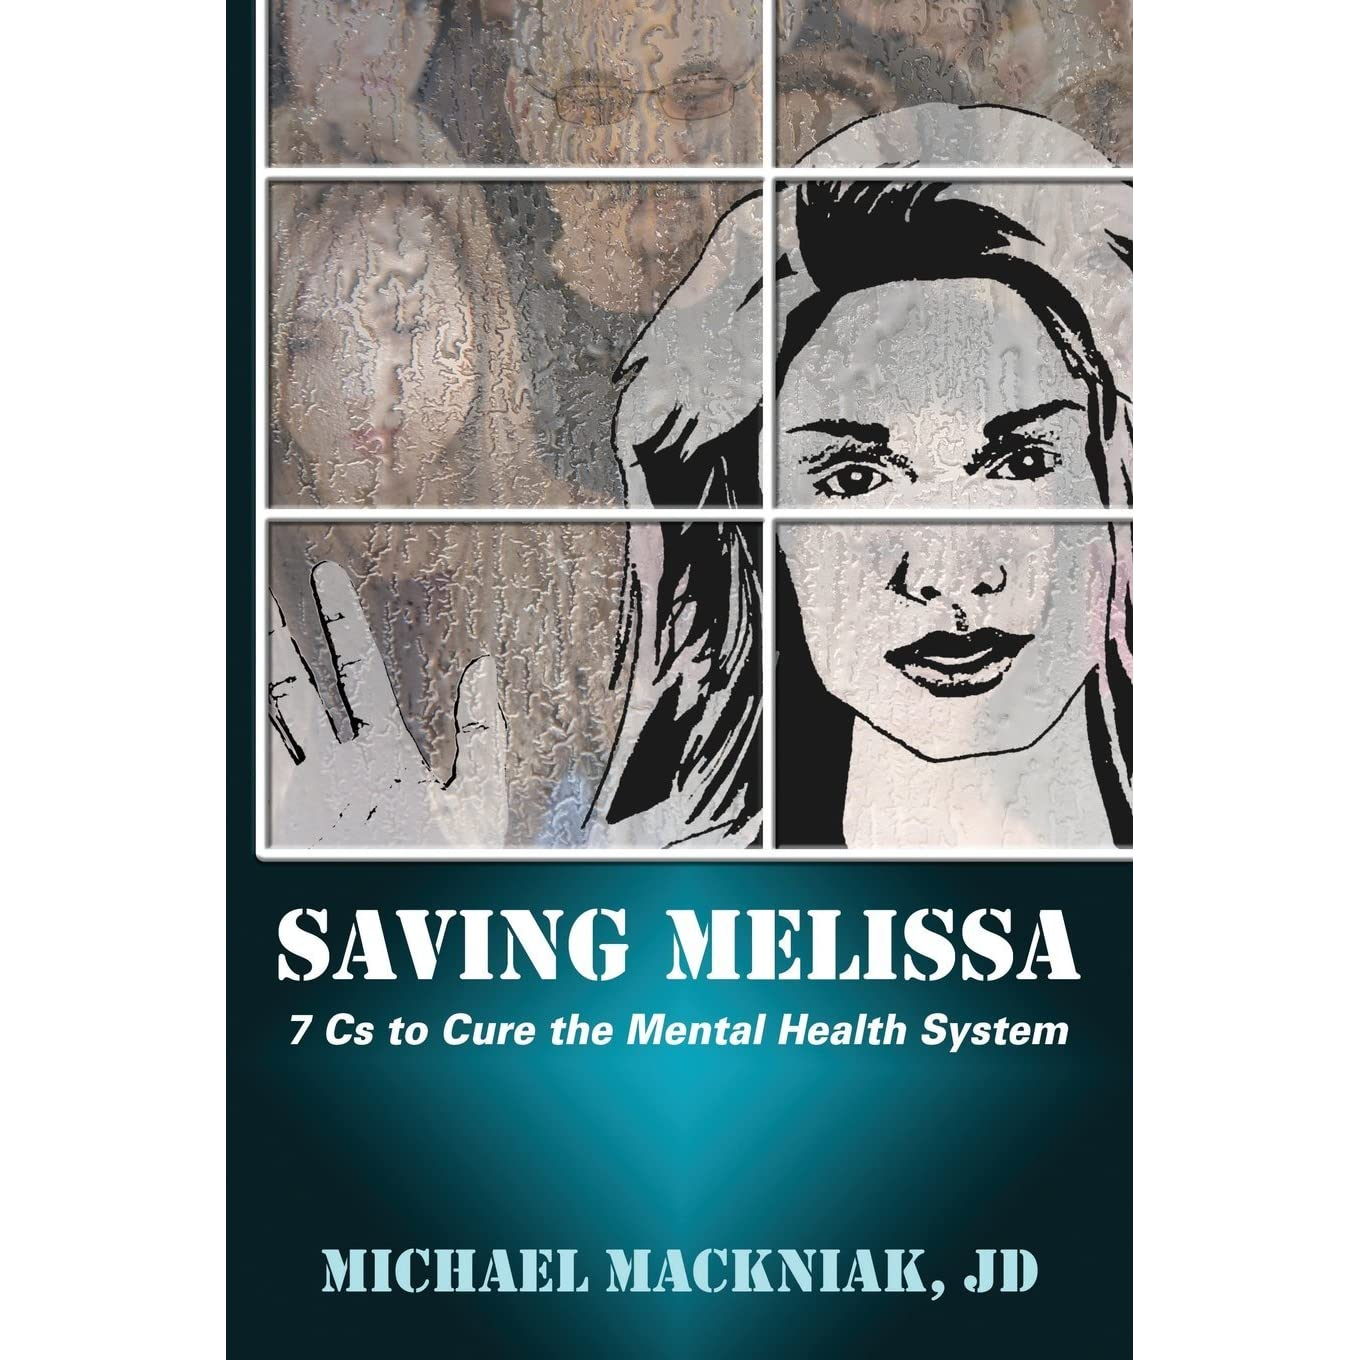 mental illness dating site uk professionals choice When you are beginning the search for the best career choice for part of selecting the right mental health career is 201506/23-mental-health-professionals.